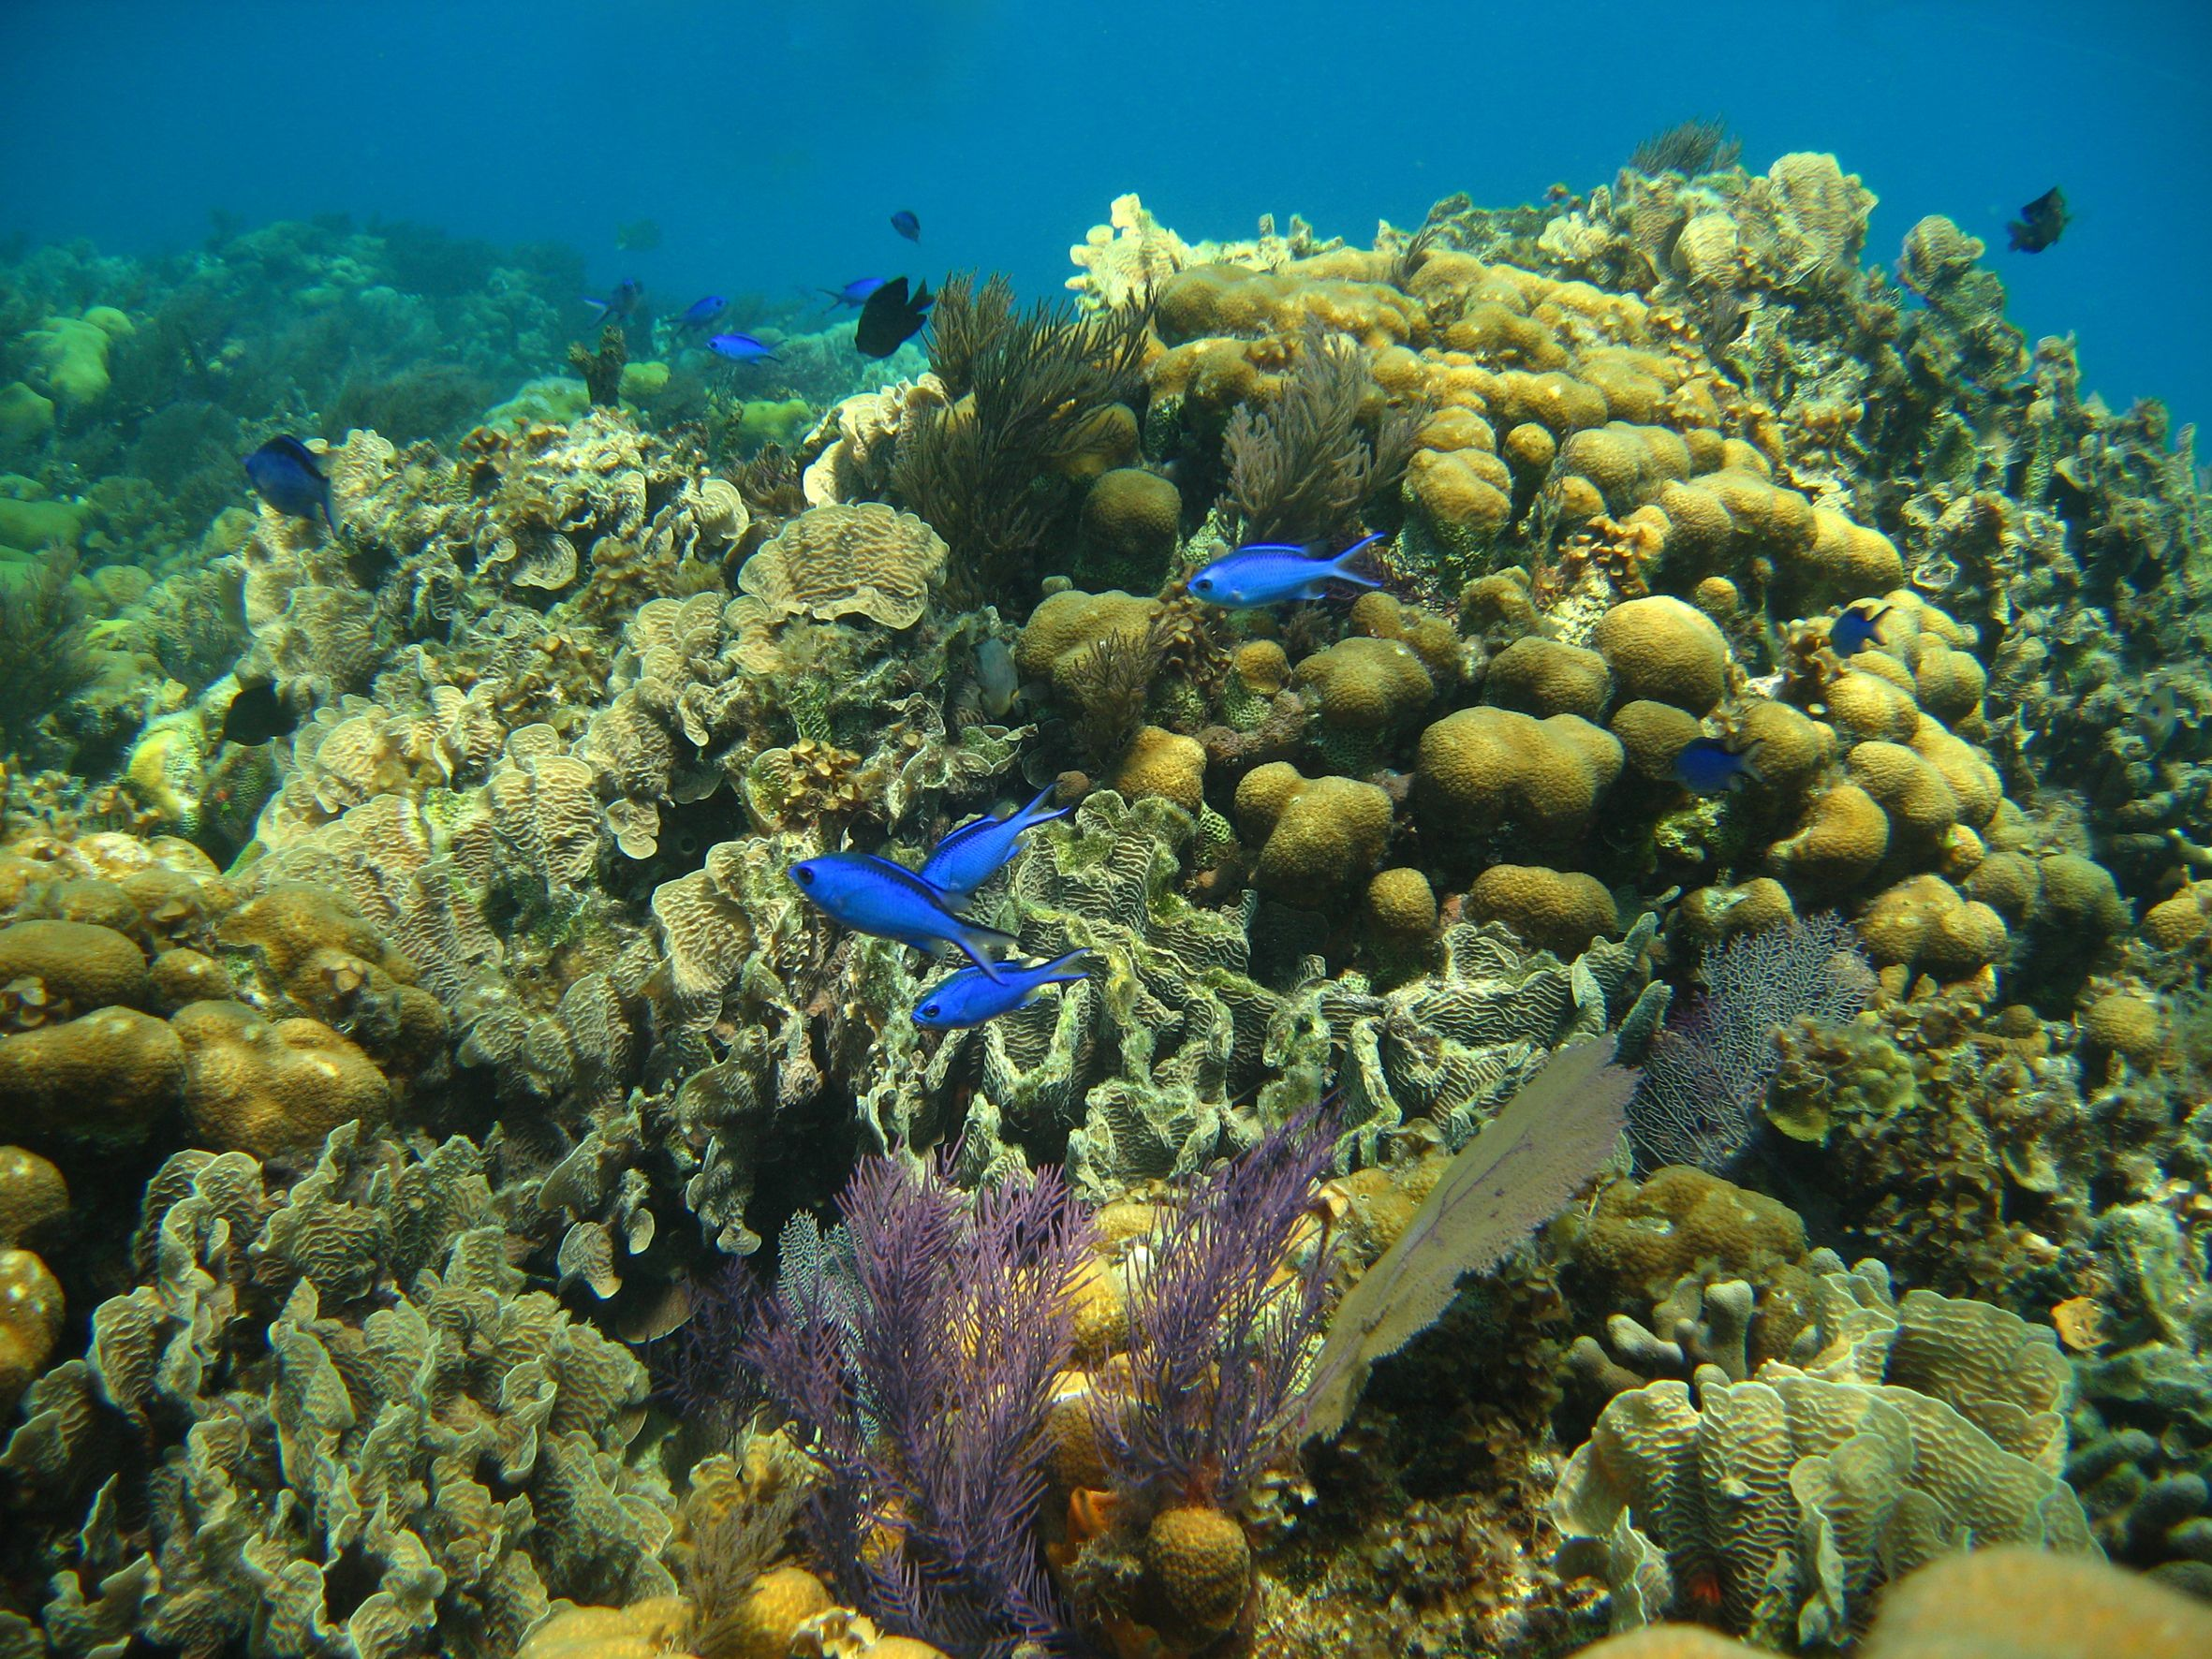 Coral Reefs in the Caribbean | ... Press Material - A clear human footprint on the Caribbean coral reefs